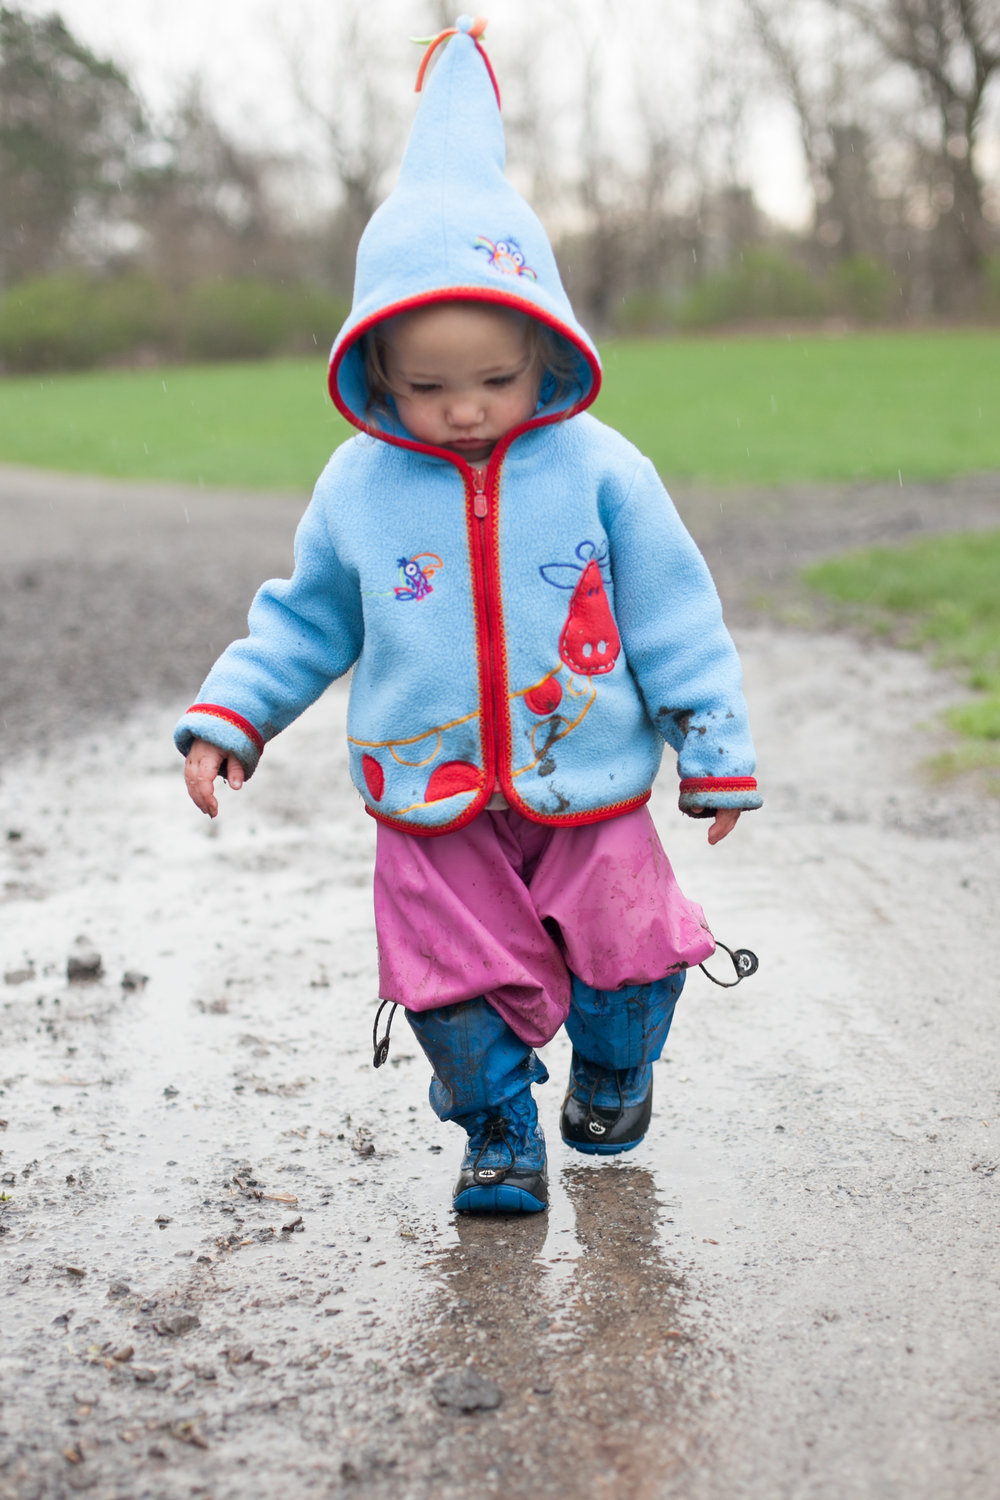 The Family Photographer Podcast Jenny Stein My Mayu Boots Child walking in rain